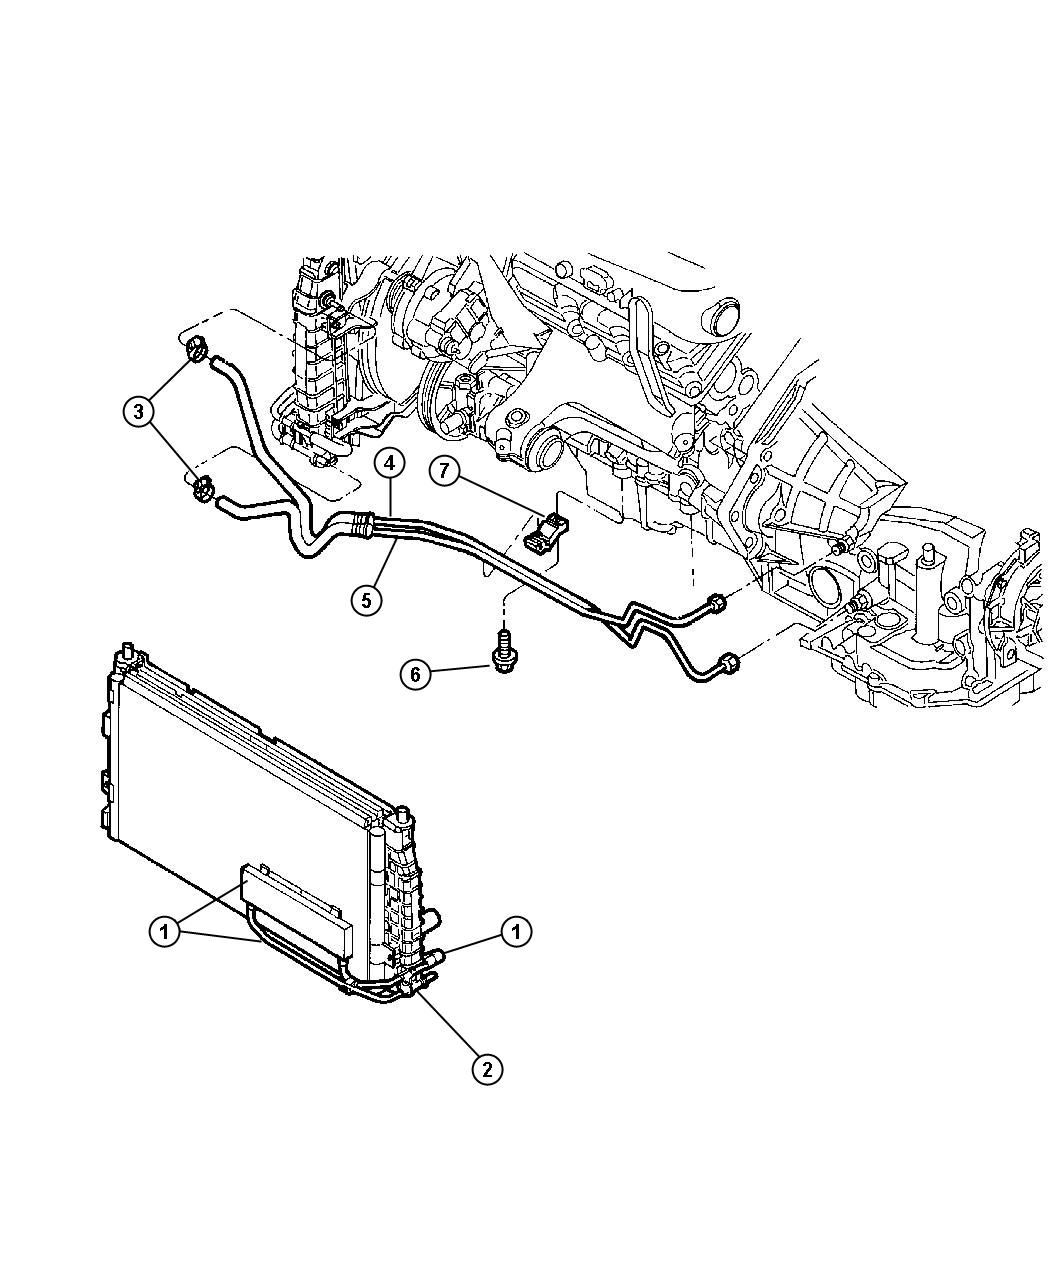 Dodge Intrepid Cooler Kit Auxiliary Trans Oil Engine